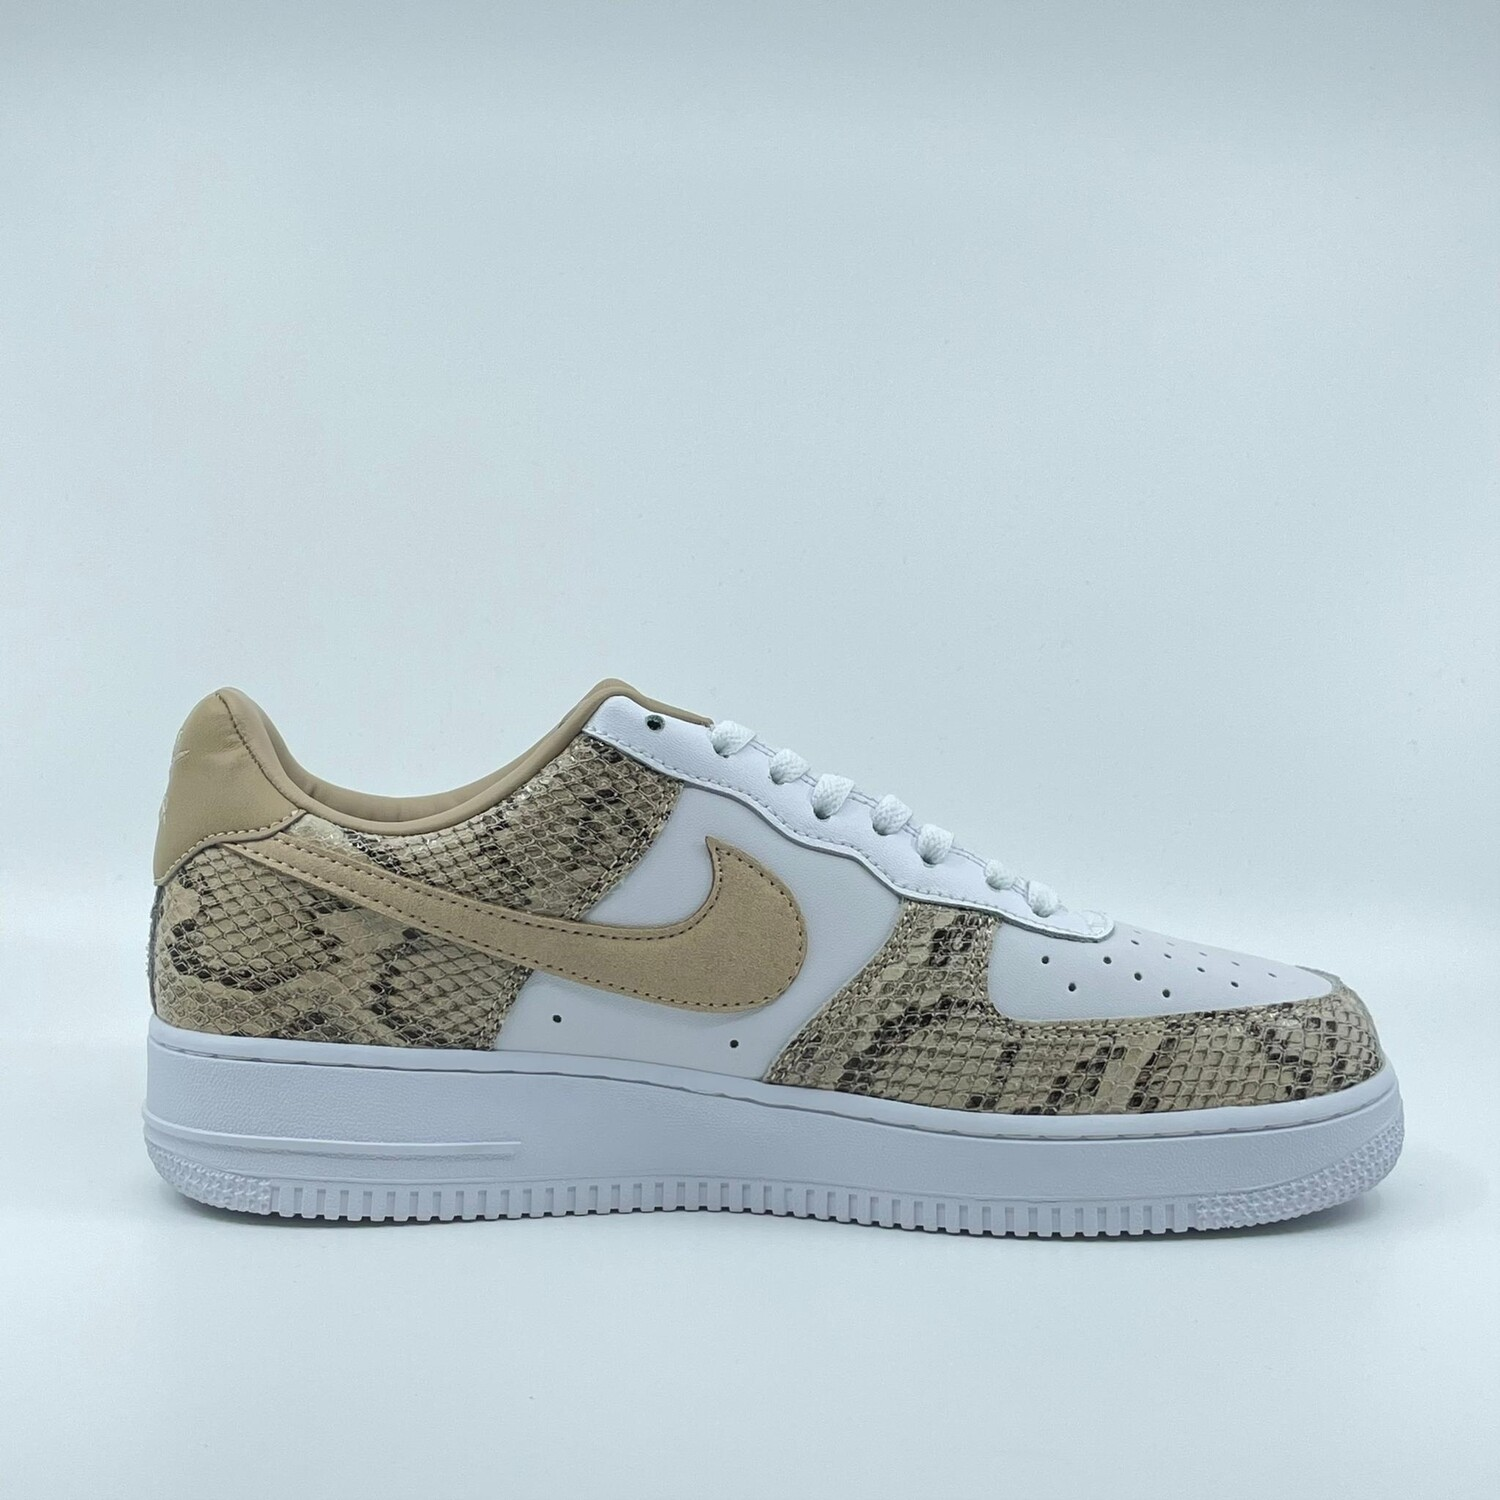 AF1 White Viper Customized